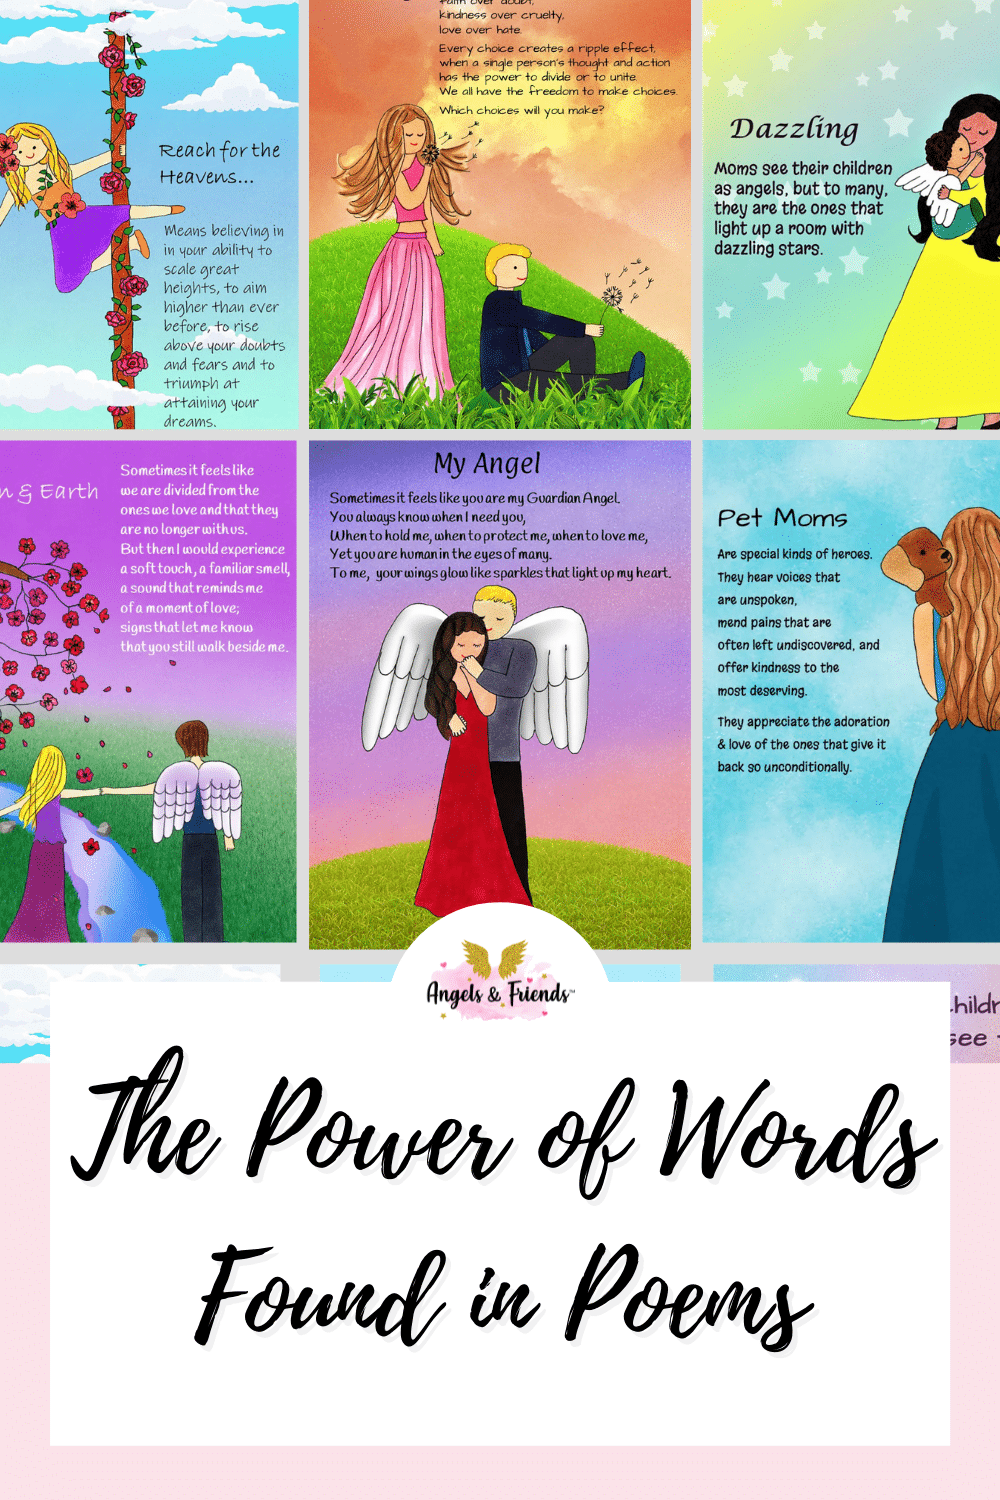 The Power of Words Found in Poems